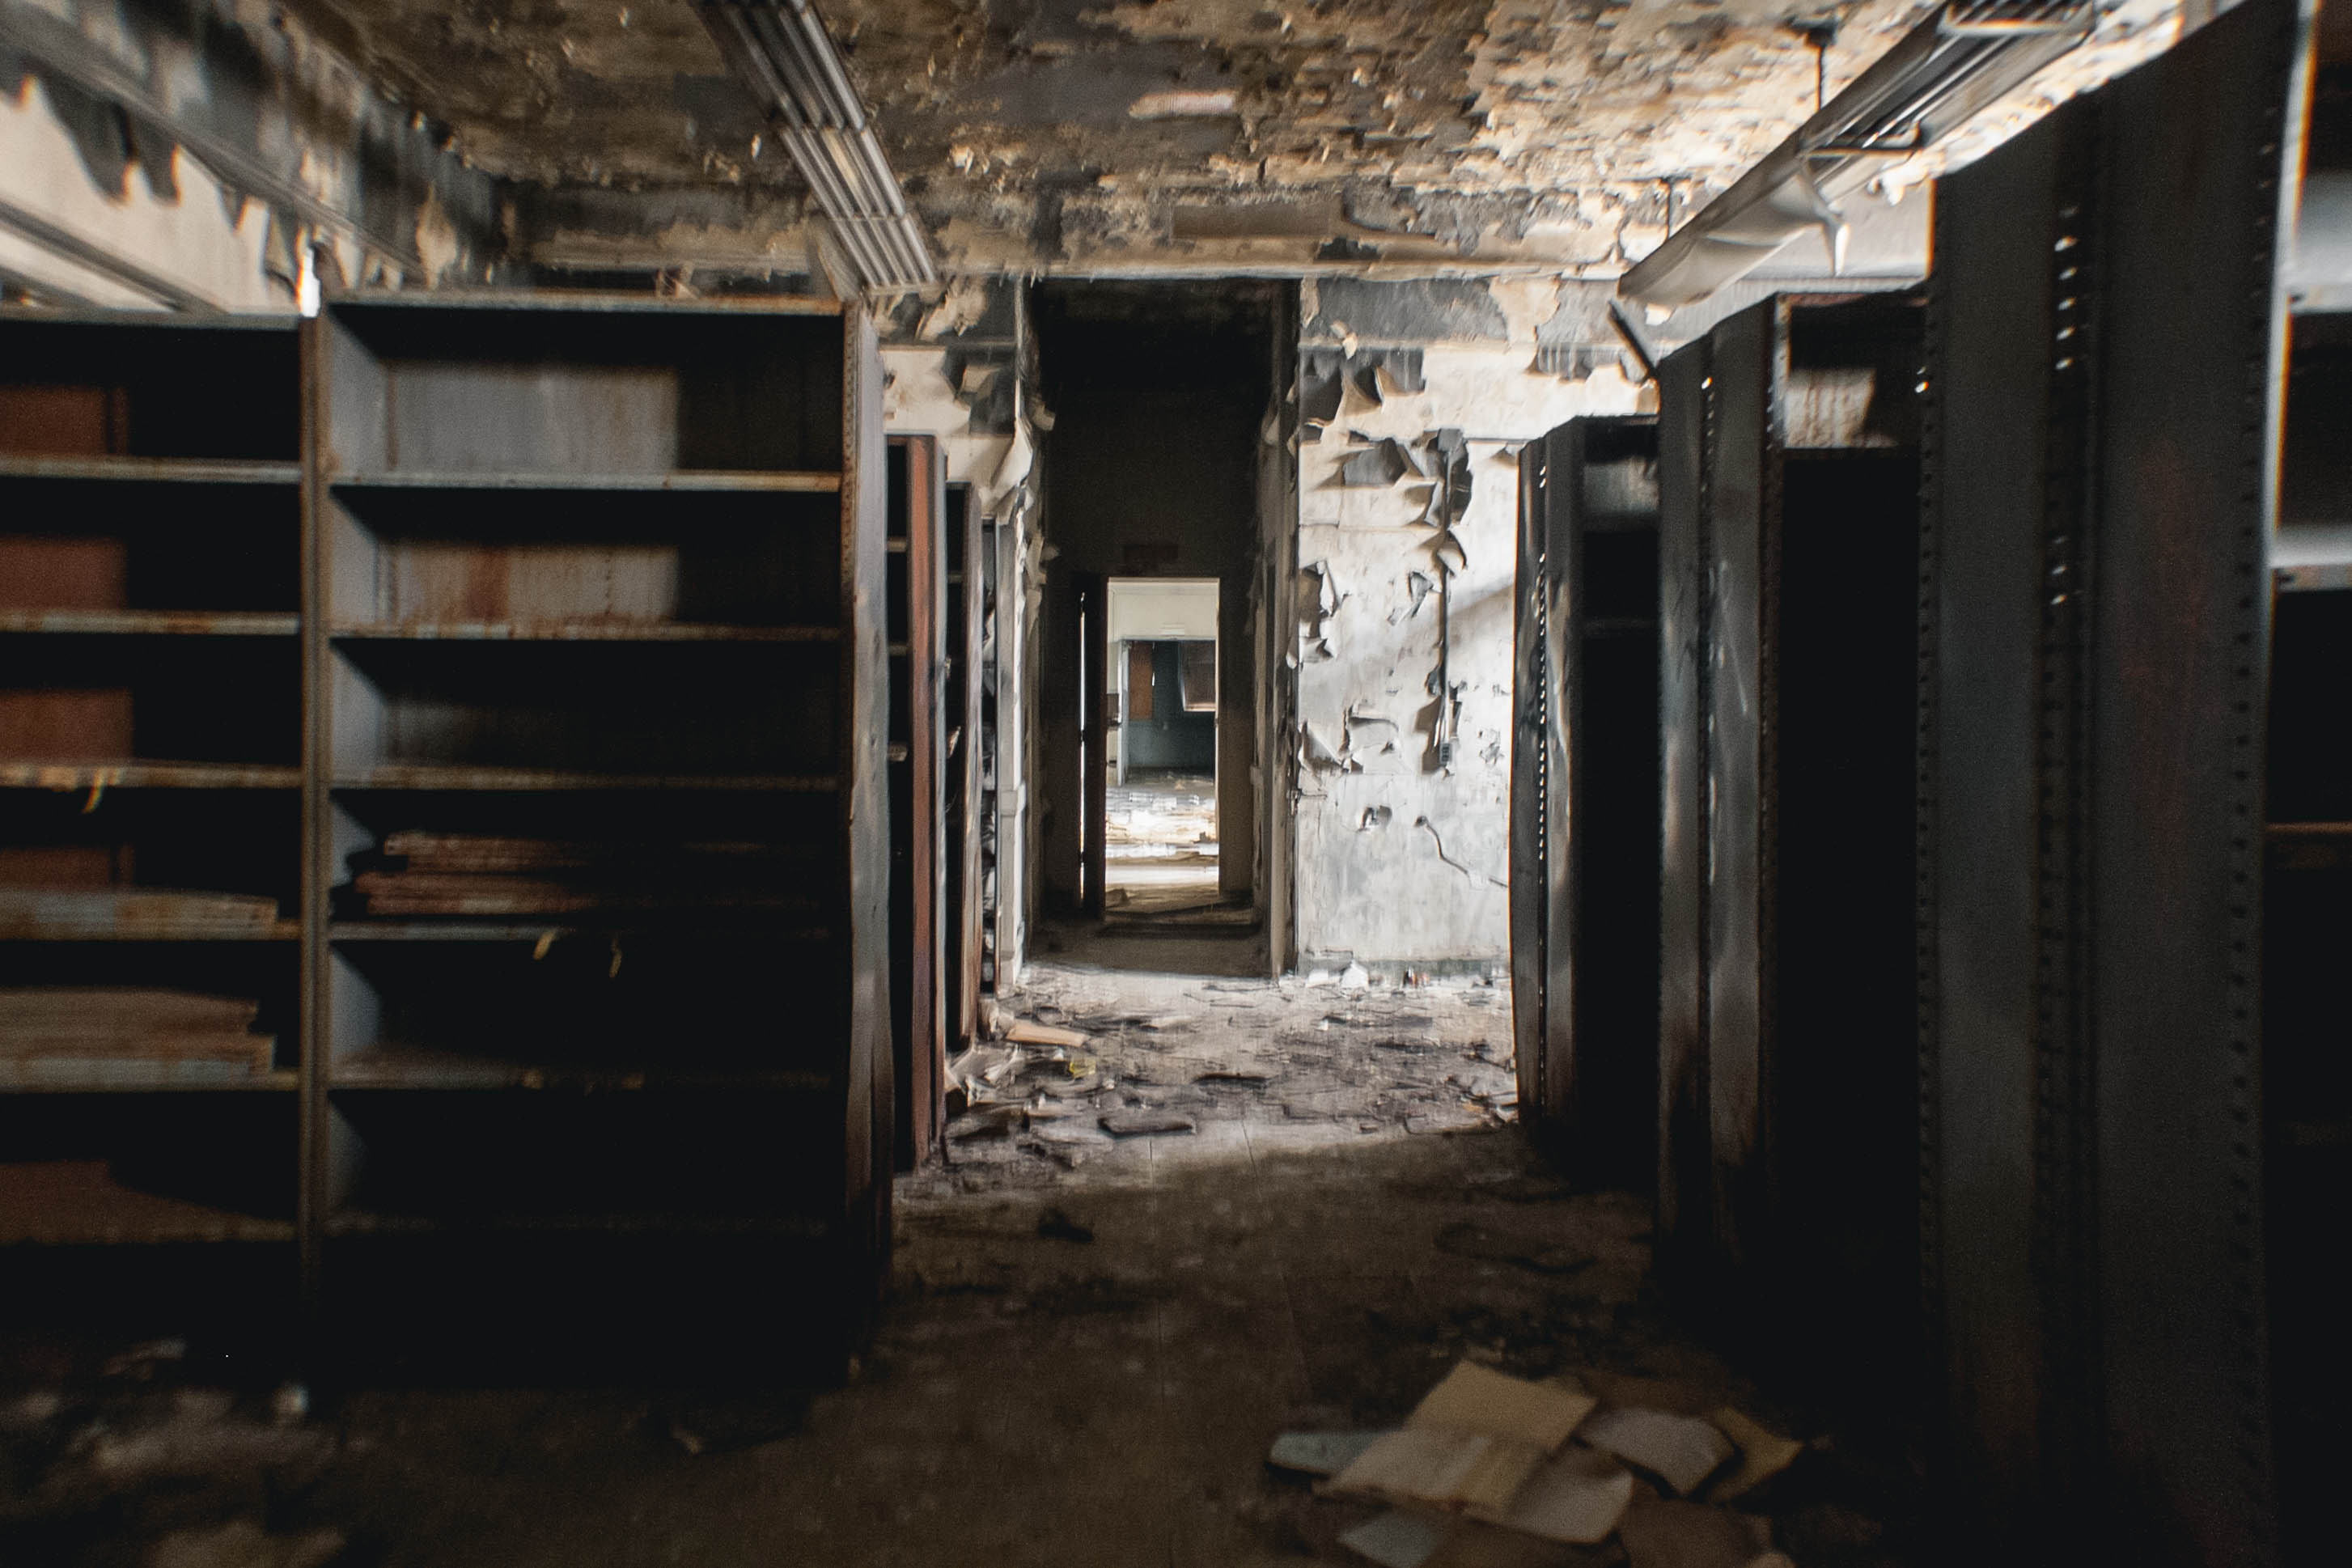 """""""This is inside the fire-damaged building. Walking around I could see damaged office equipment, paperwork, and books. Further in I found a room that was completely destroyed. There were books everywhere. All the windows were boarded shut and the floors and walls creaked with every step. I decided to leave because I was afraid the room would collapse."""""""